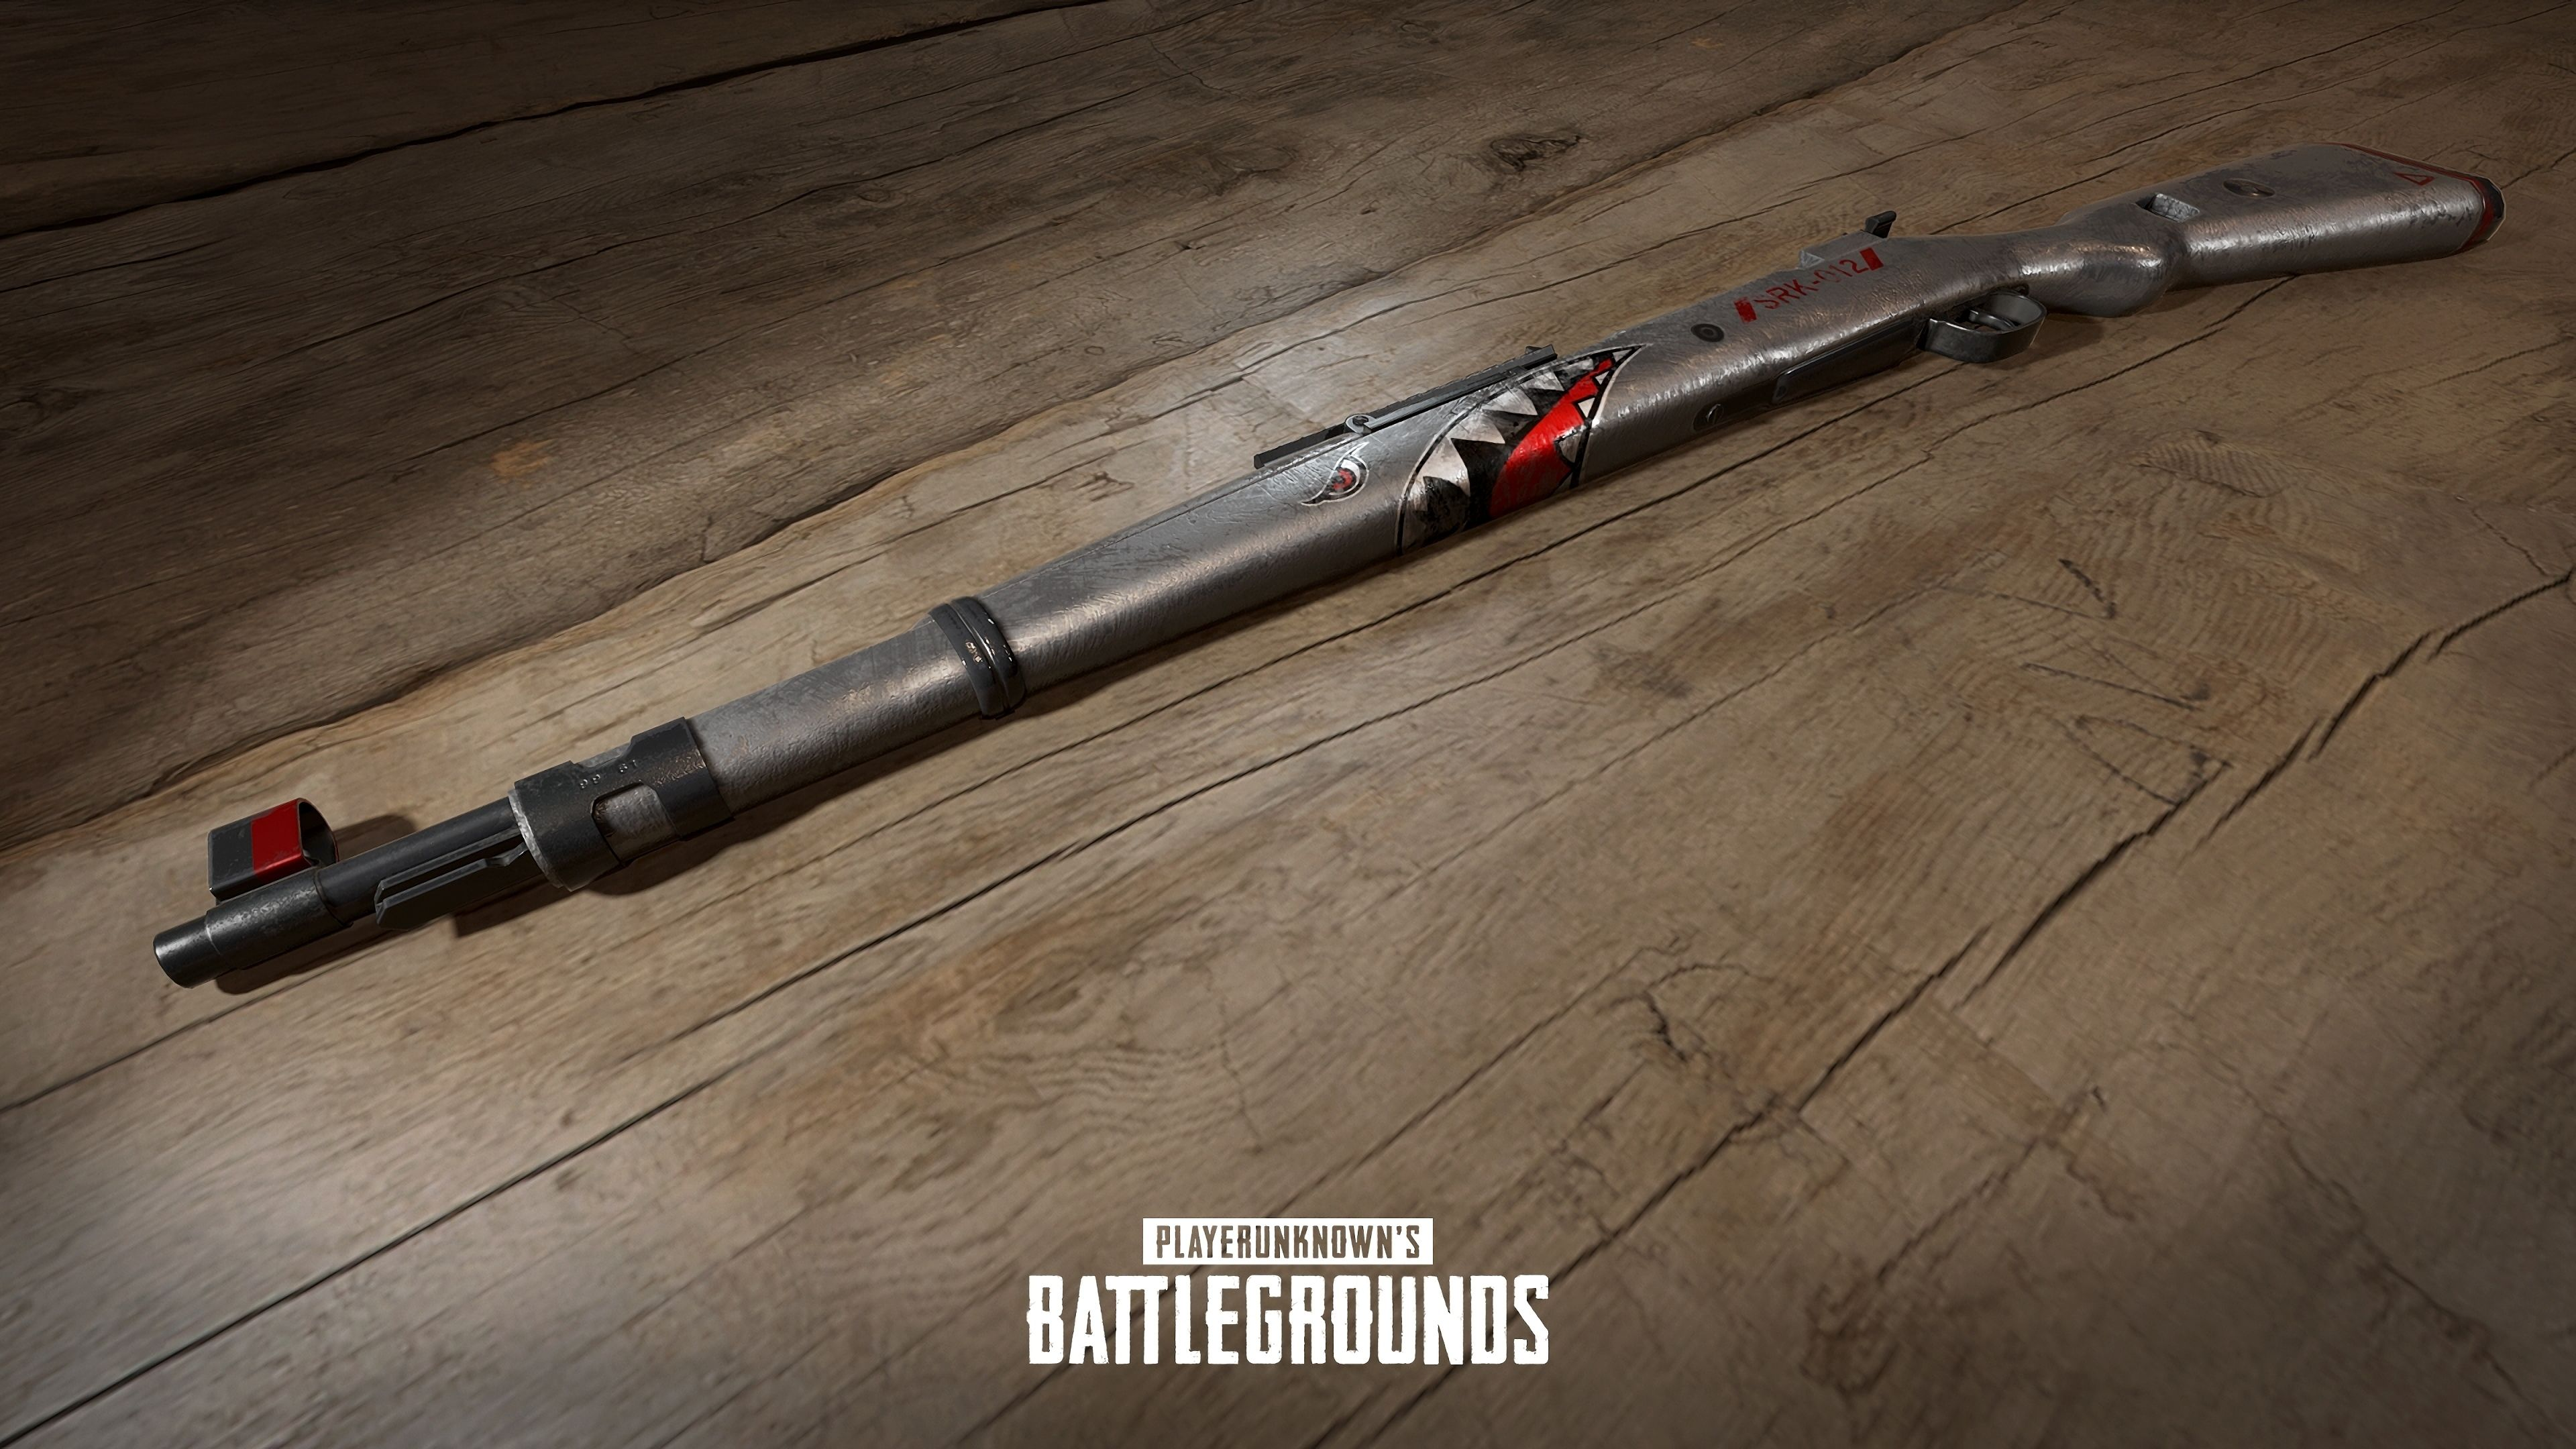 Pubg Wallpaper Weapon: Pubg Weapon Master Wallpaper